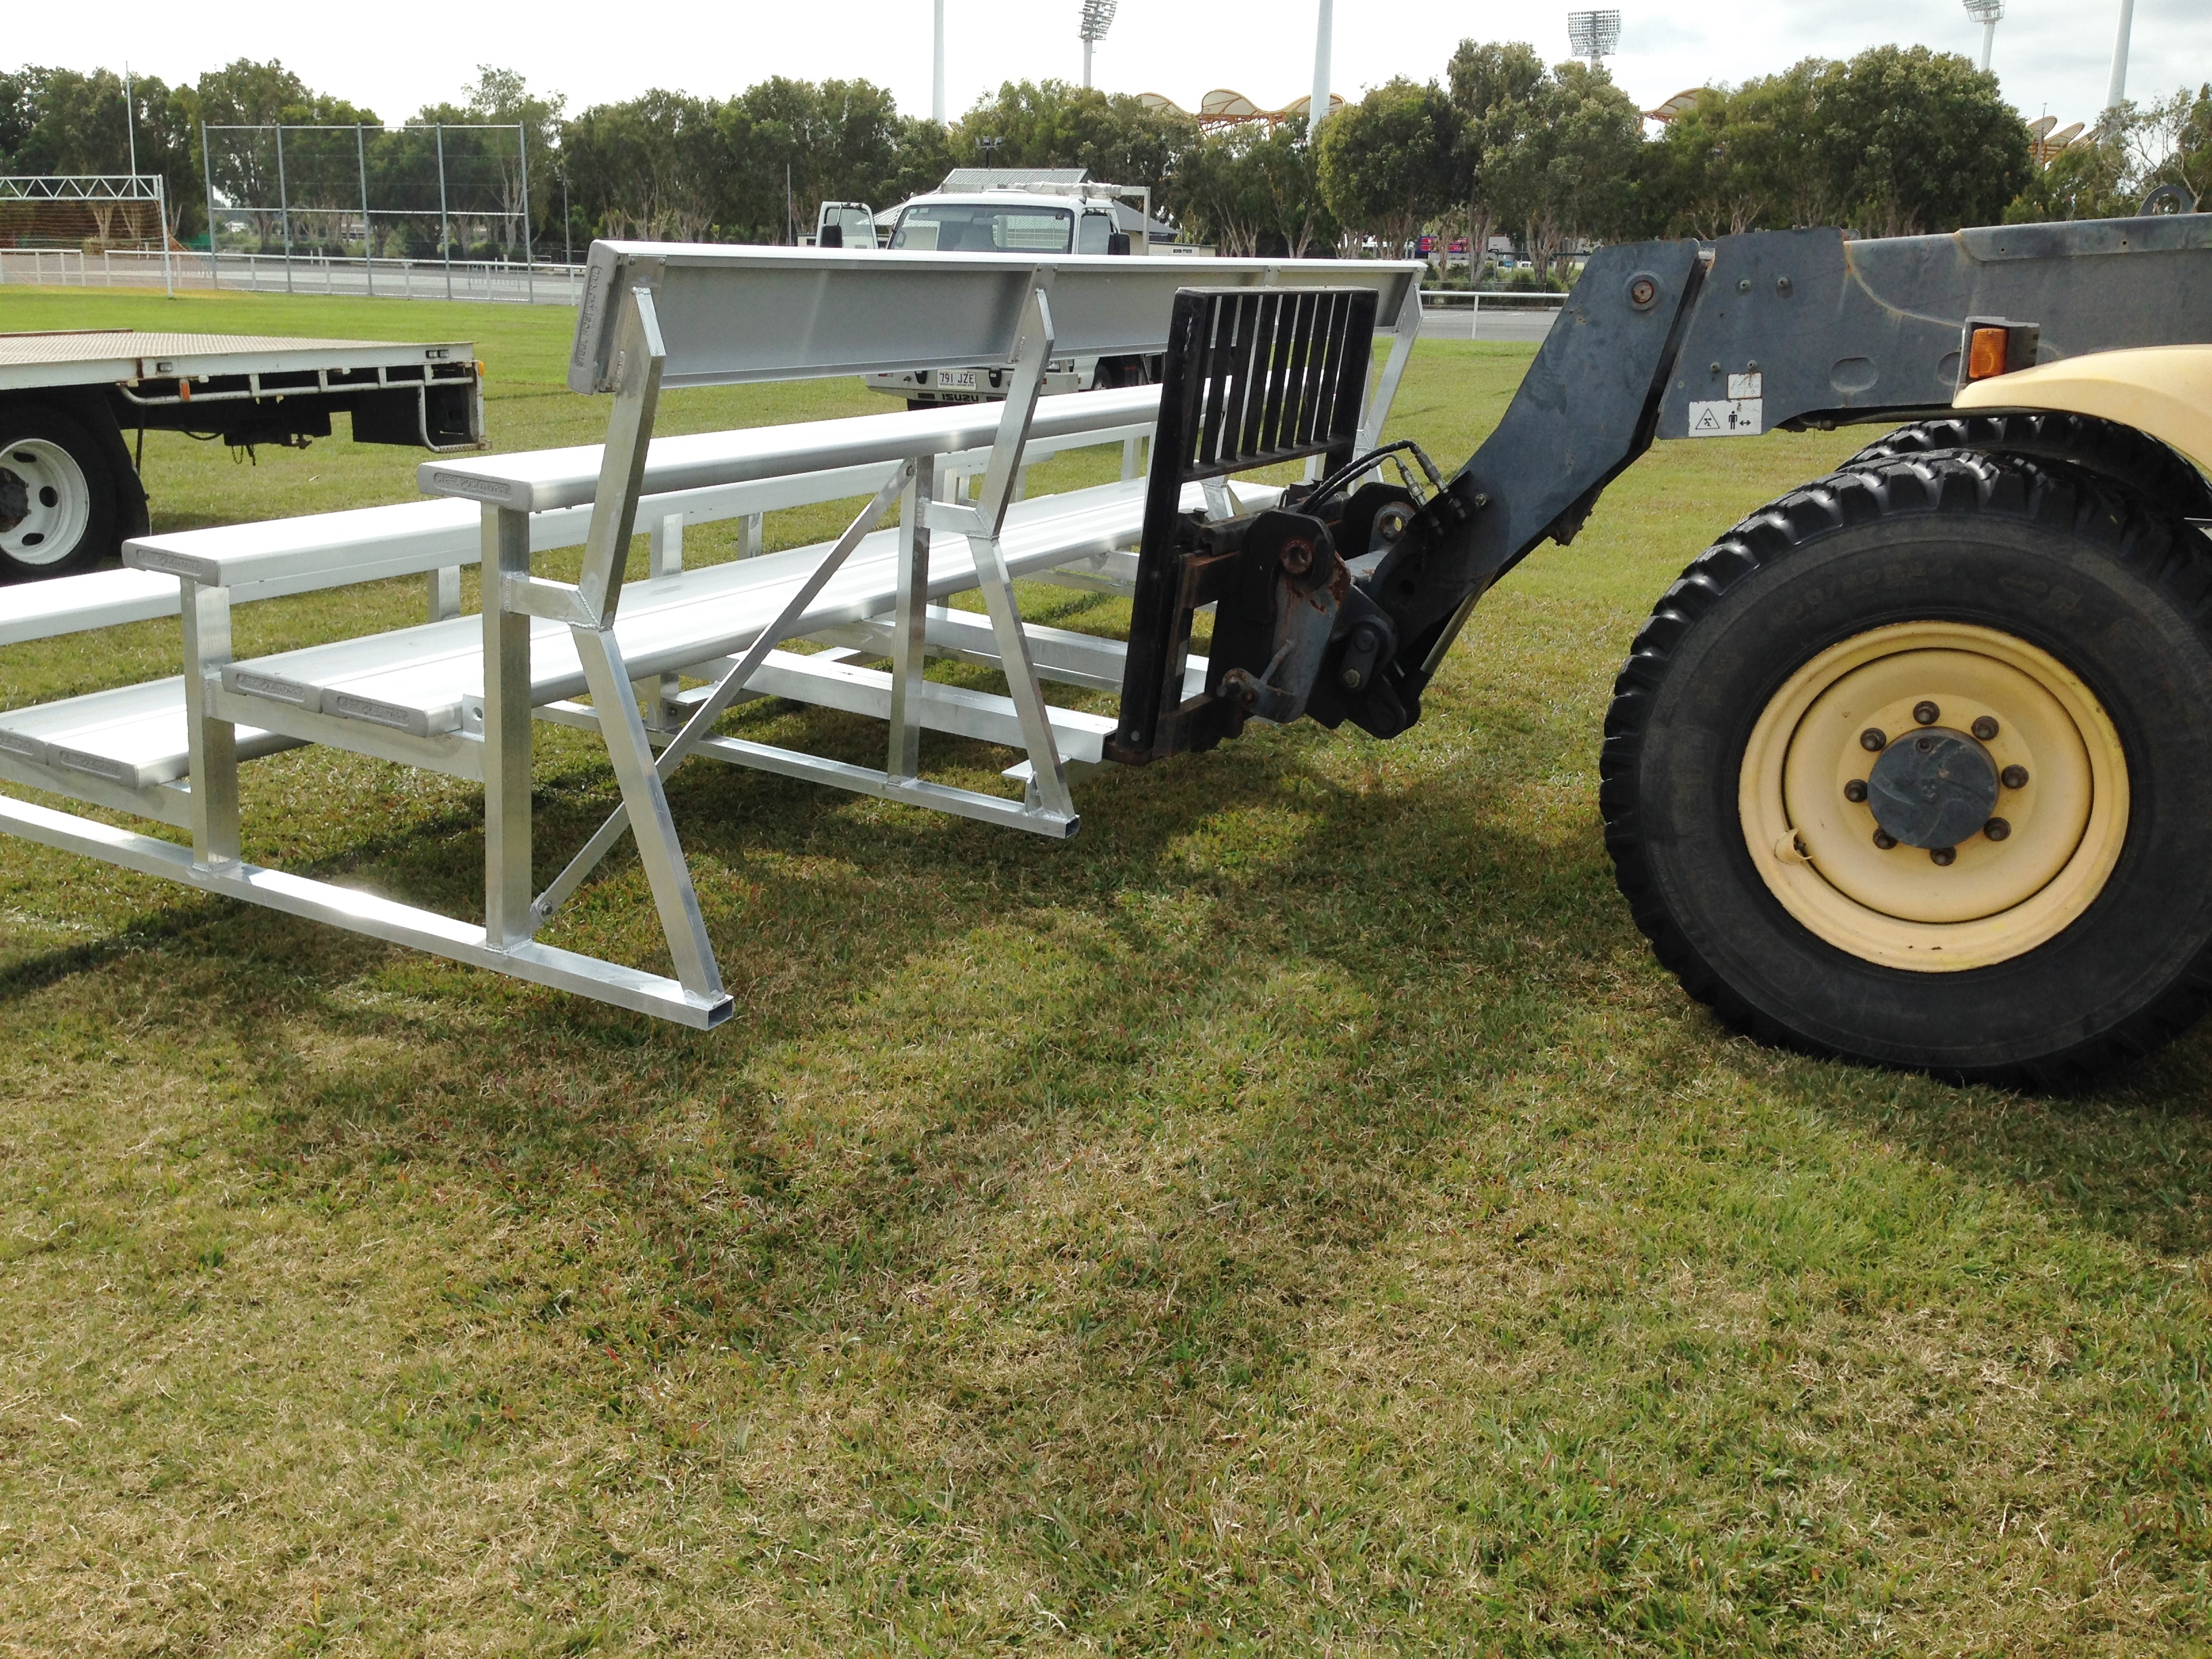 MOBILE TIERED SEATING UNITS